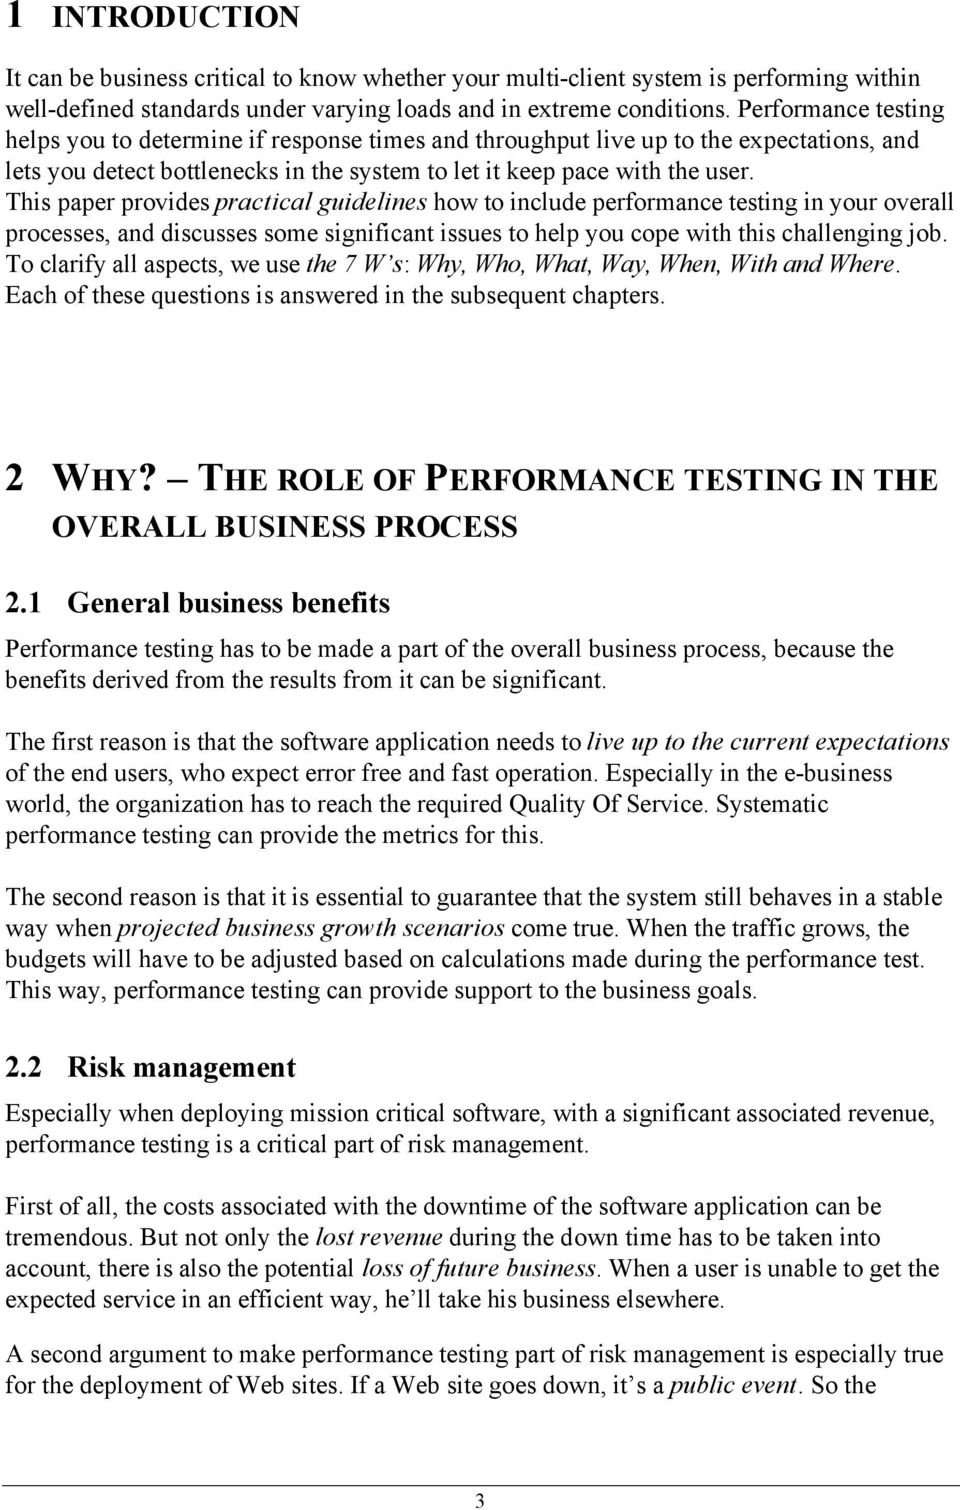 This paper provides practical guidelines how to include performance testing in your overall processes, and discusses some significant issues to help you cope with this challenging job.